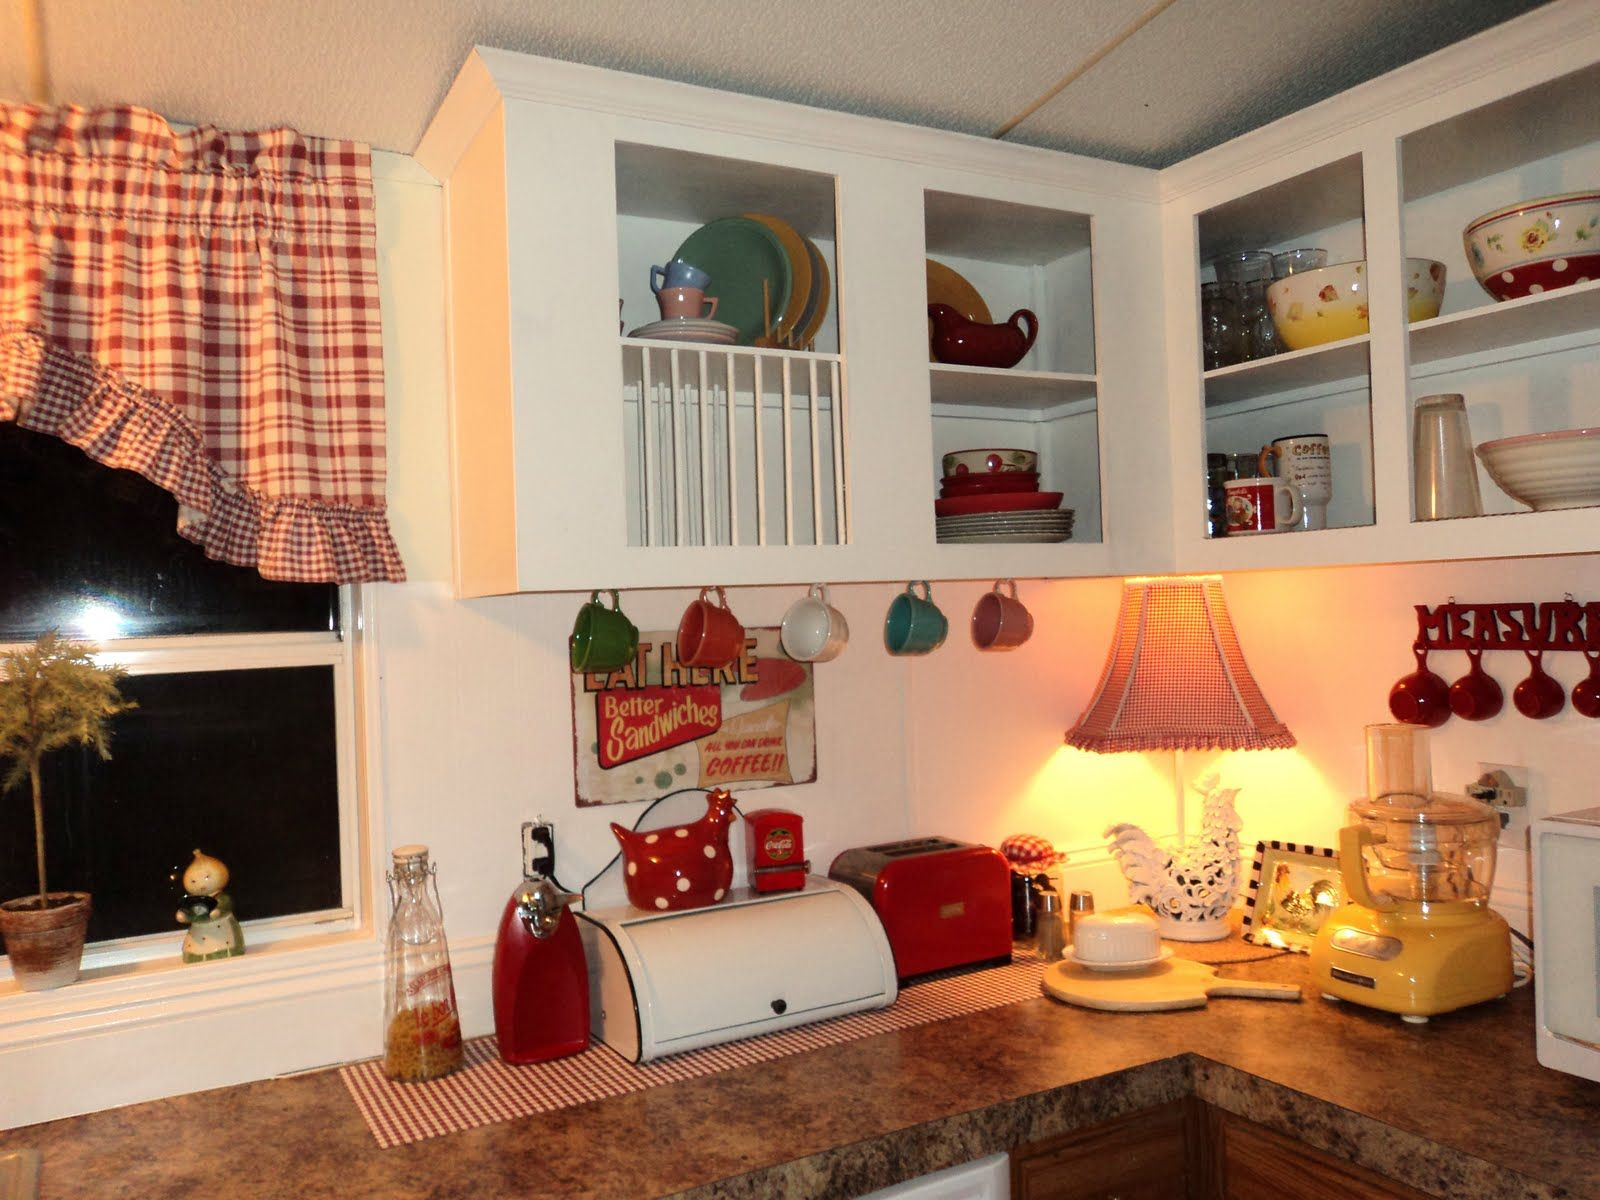 Mobile home interior ideas love the red accents and all the vintage accessories  dated bread